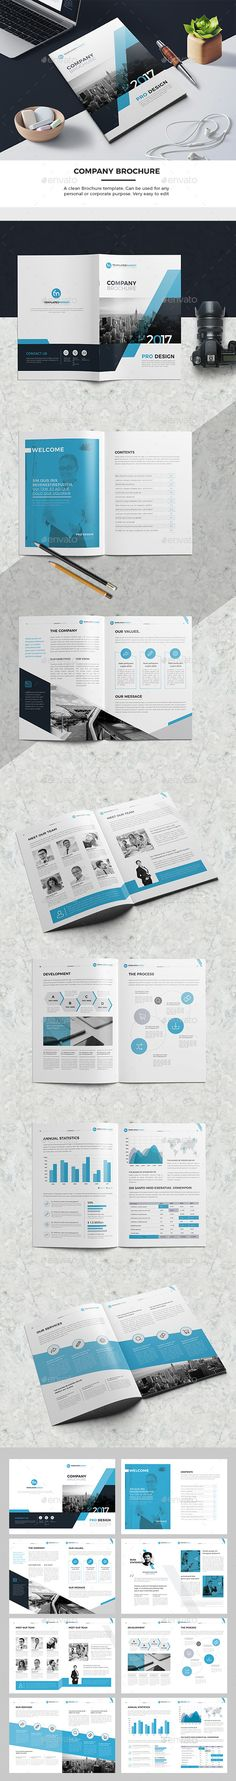 #Company #Brochure - #Corporate Brochures Download here: https://graphicriver.net/item/company-brochure/19525919?ref=alena994